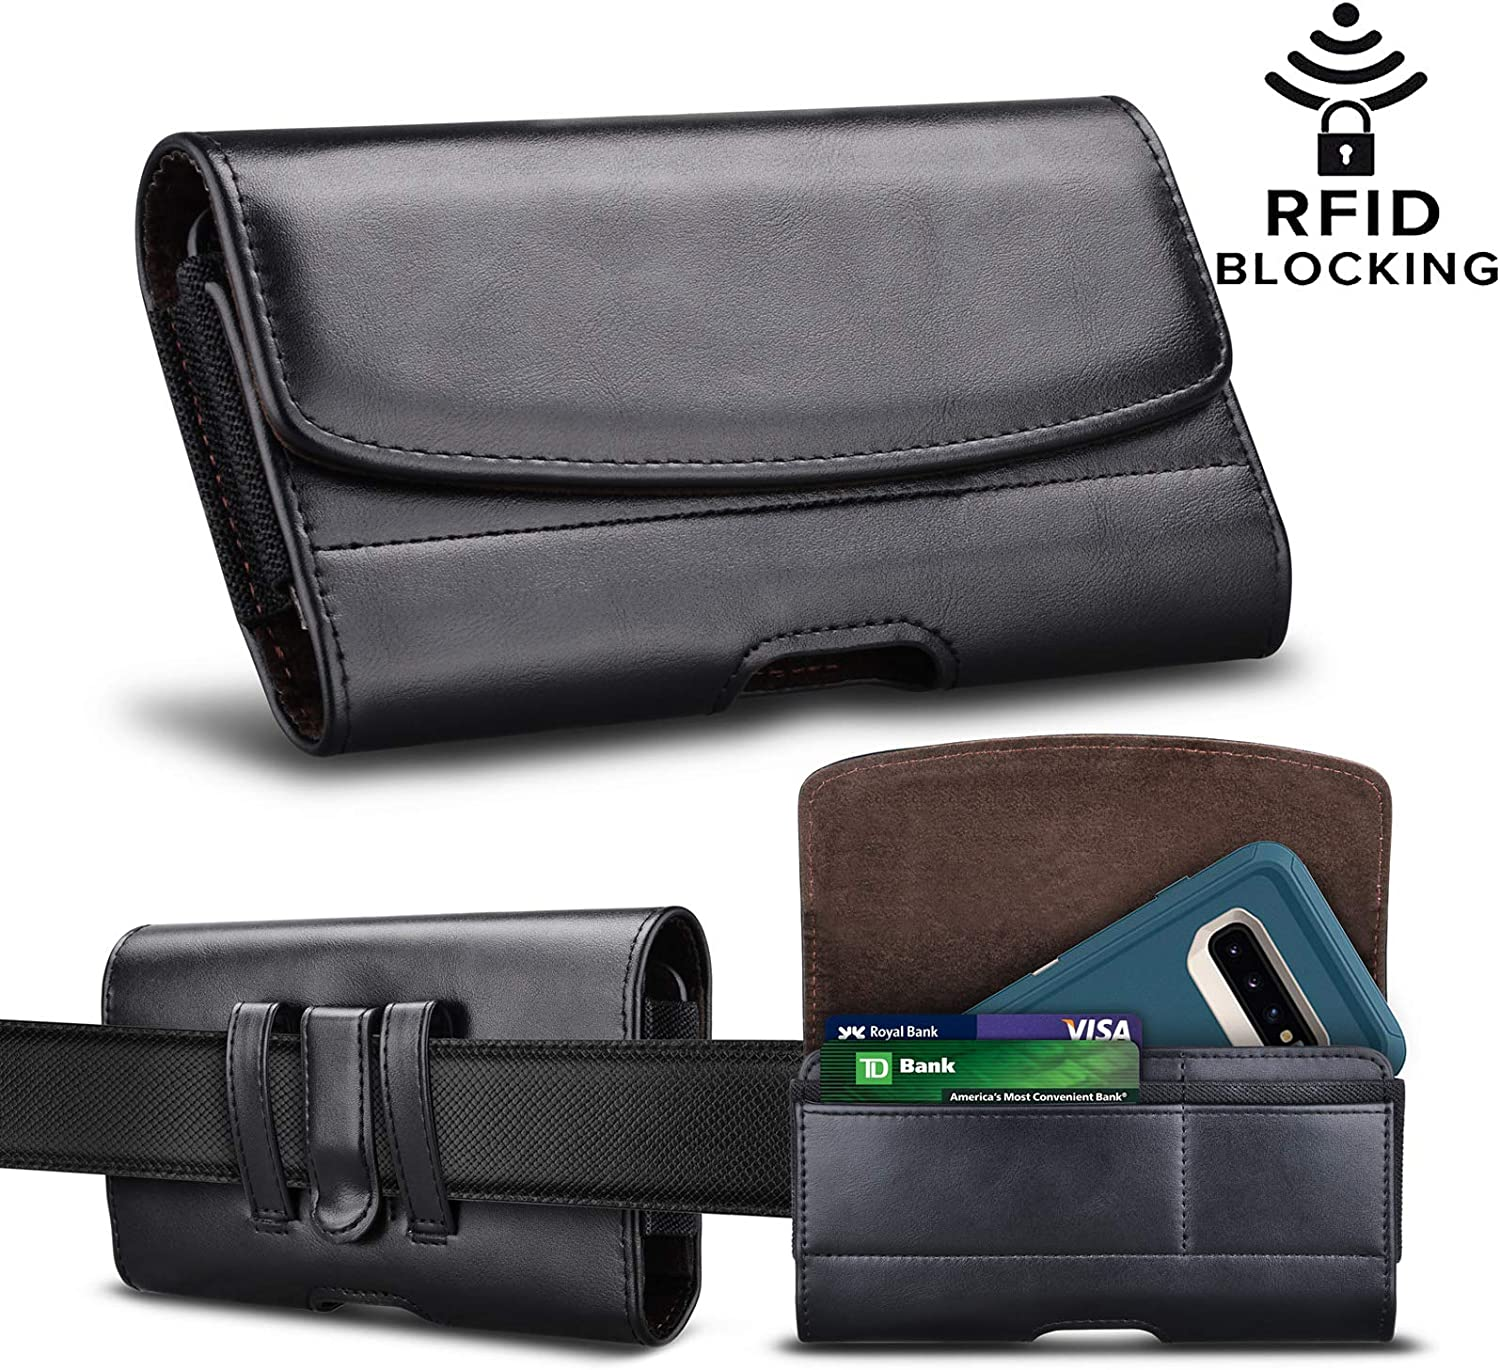 Njjex Phone Holster For iPhone 11 Pro Max XS MAX XR,6/7/8 Plus, Galaxy S10+ S9 S8 S7 Plus,S10E,Note 10,Note 9/8/5 A10 A20 A30 A50 A70, PU Leather Belt Clip Pouch RFID Wallet Carrying Case & Card Slots